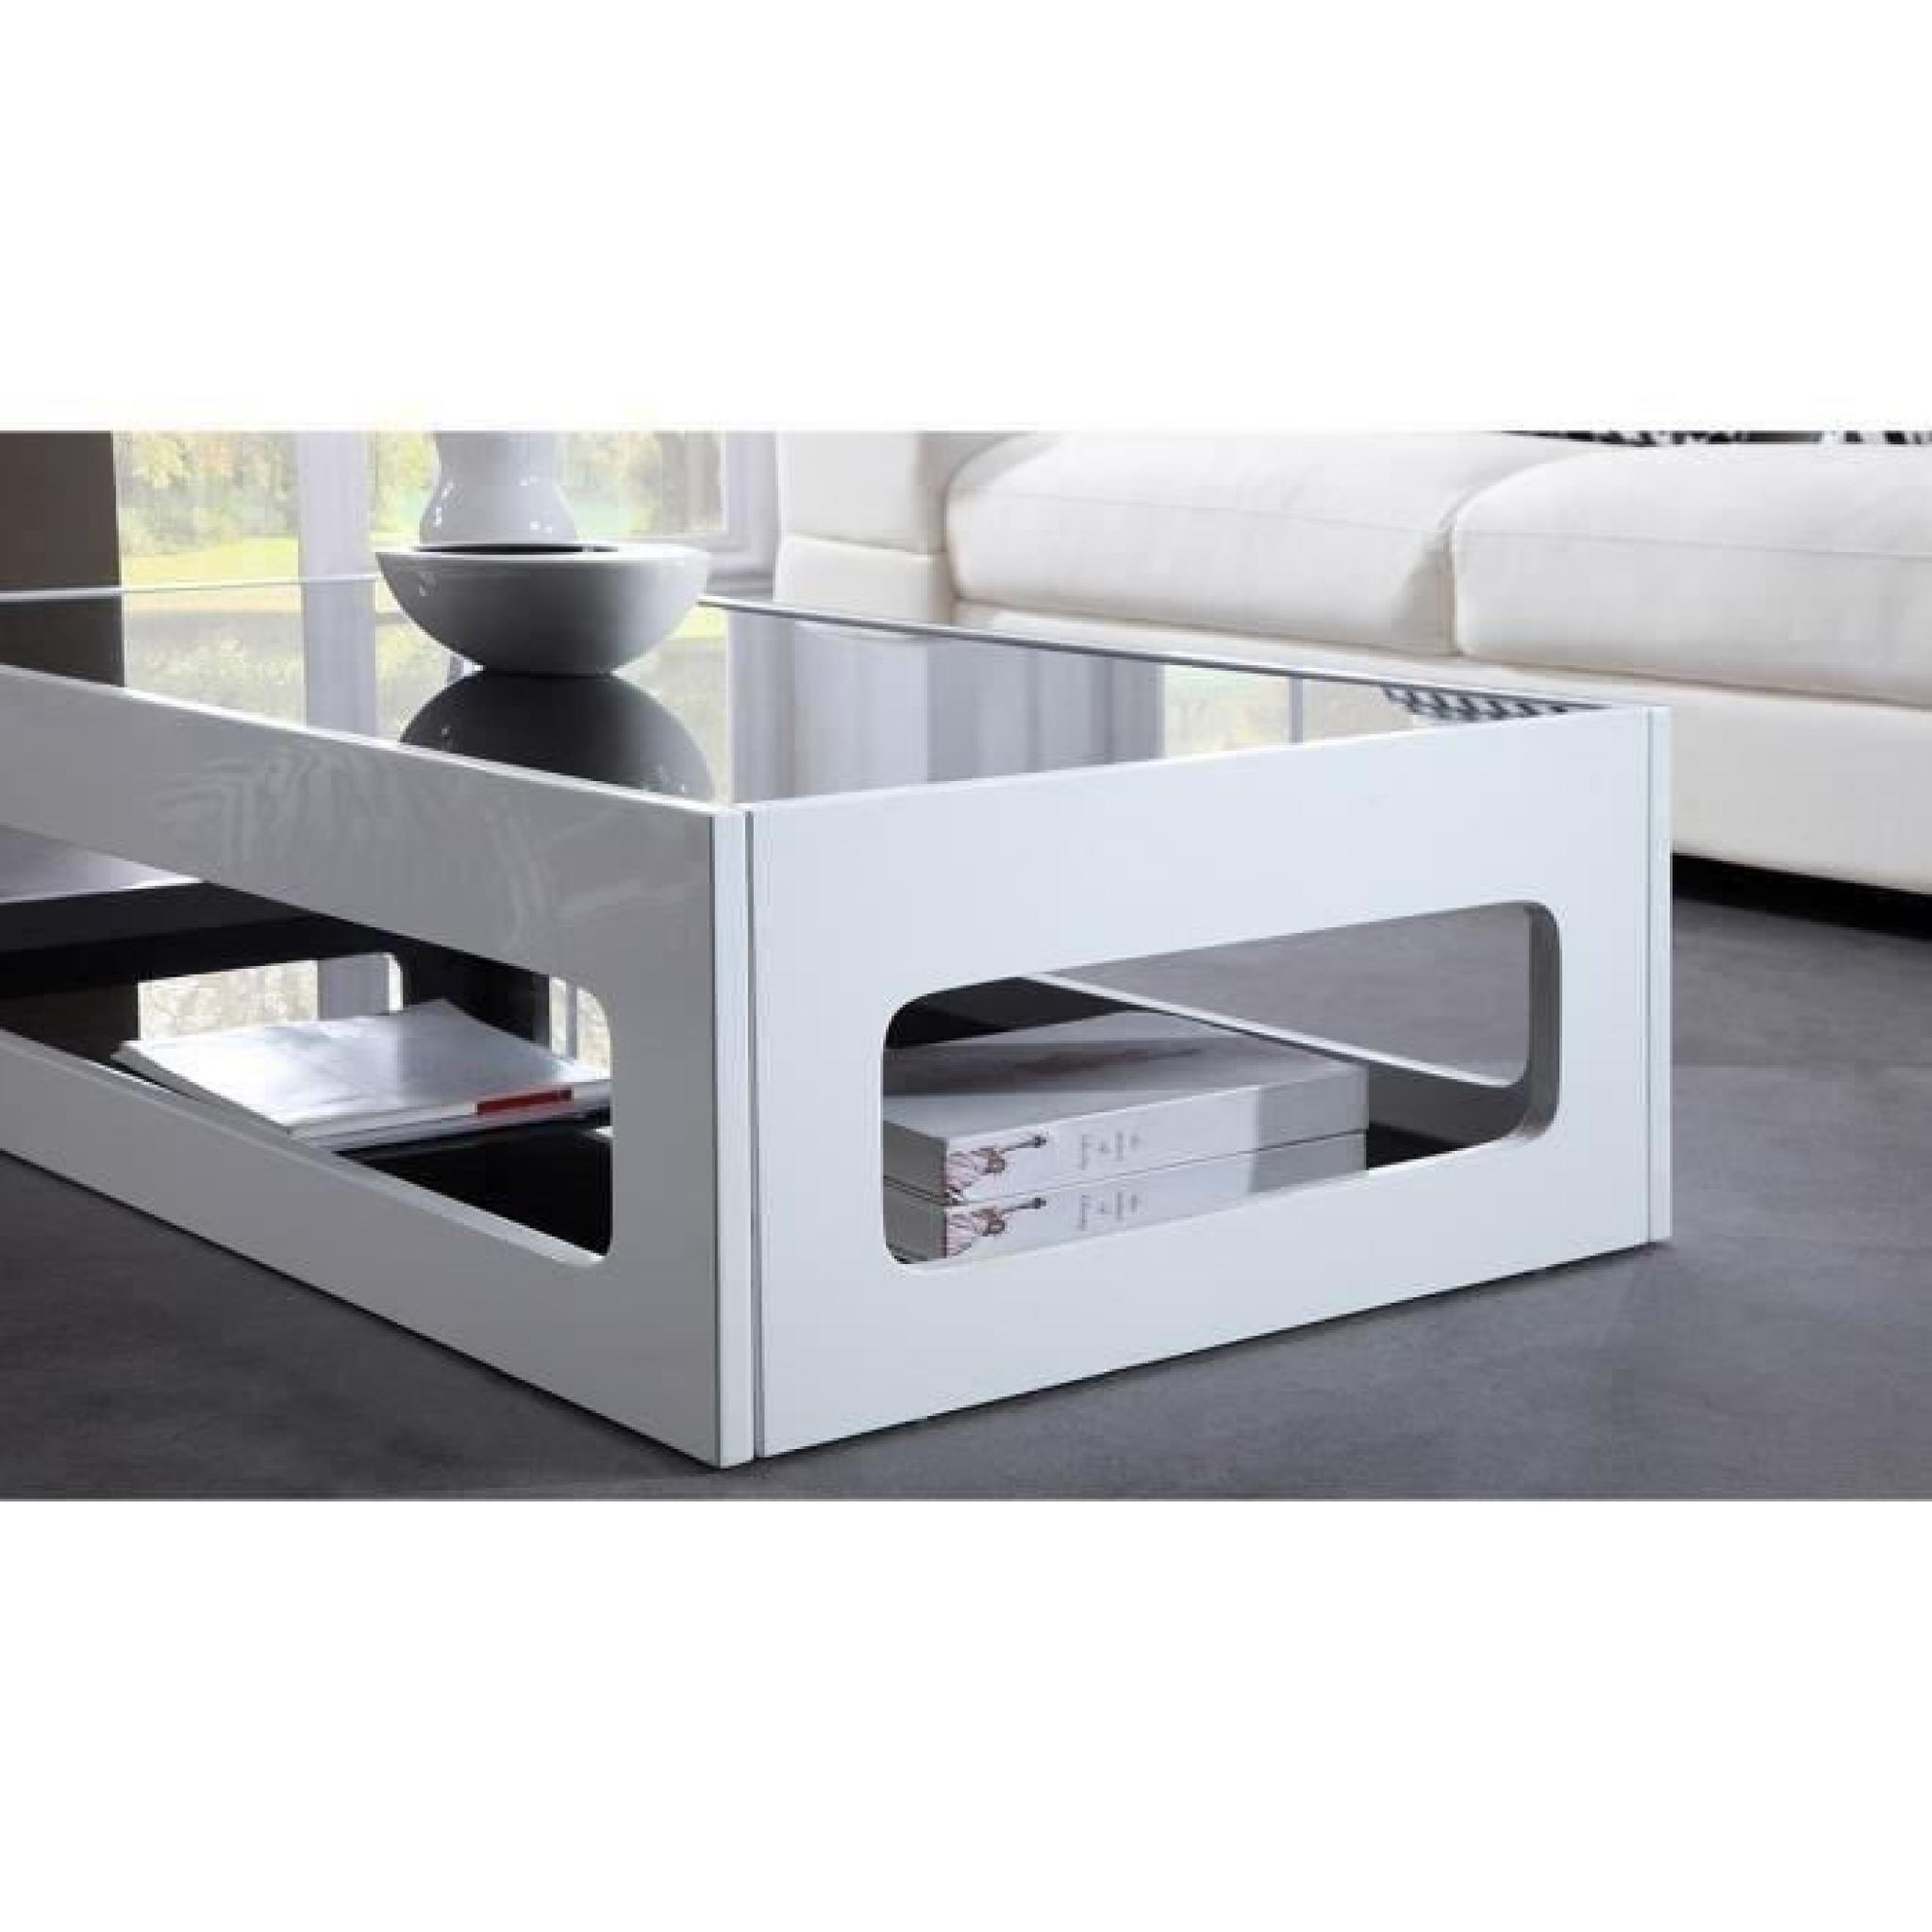 Table basse Brooklyn pas cher promo